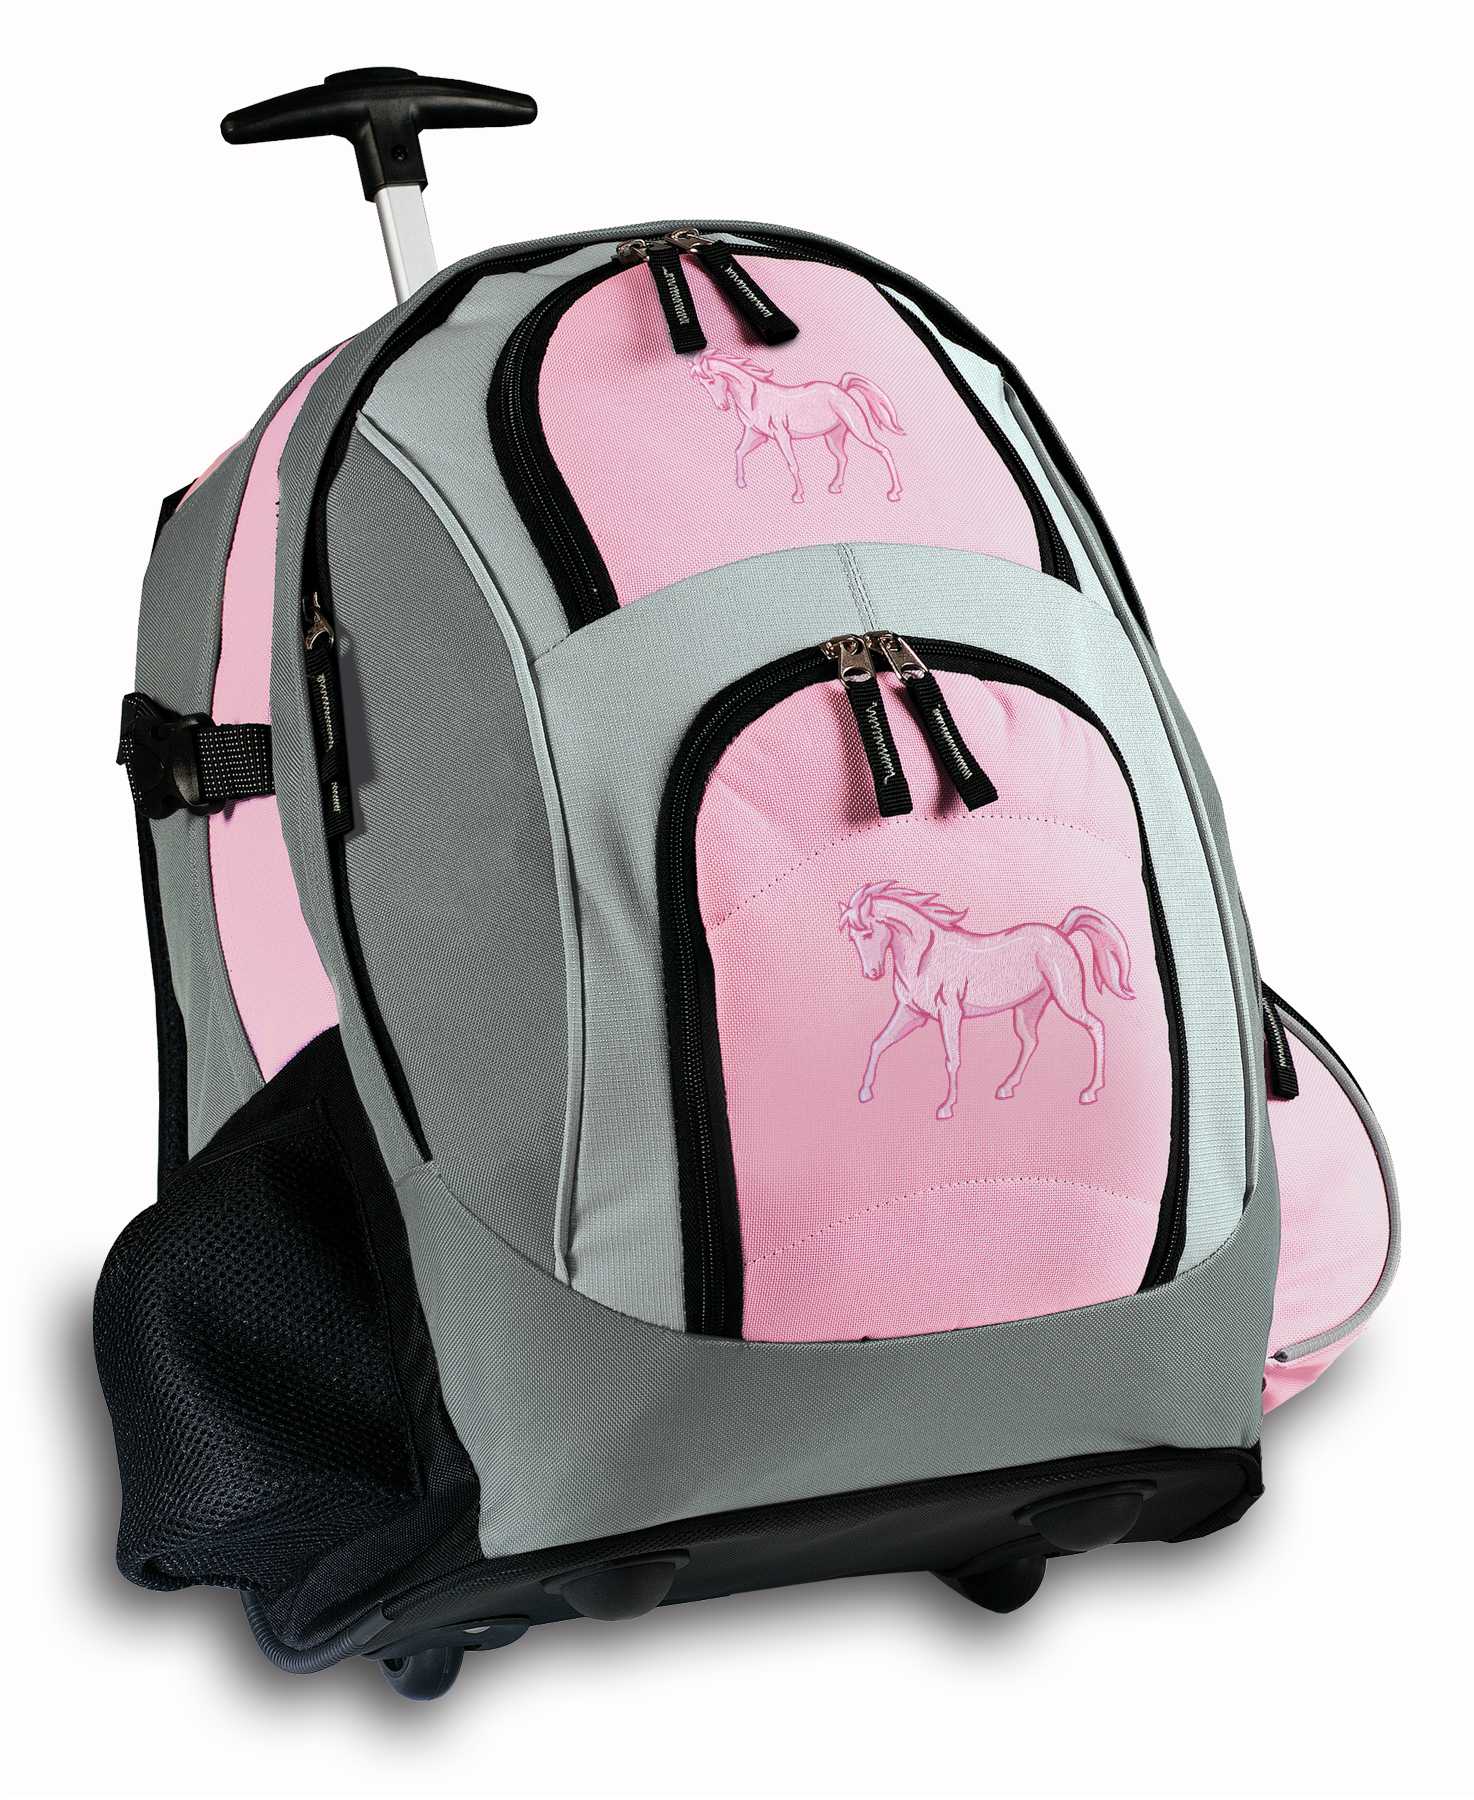 School Backpacks With Wheels Uor54feY Horse Rolling Backpack Cute